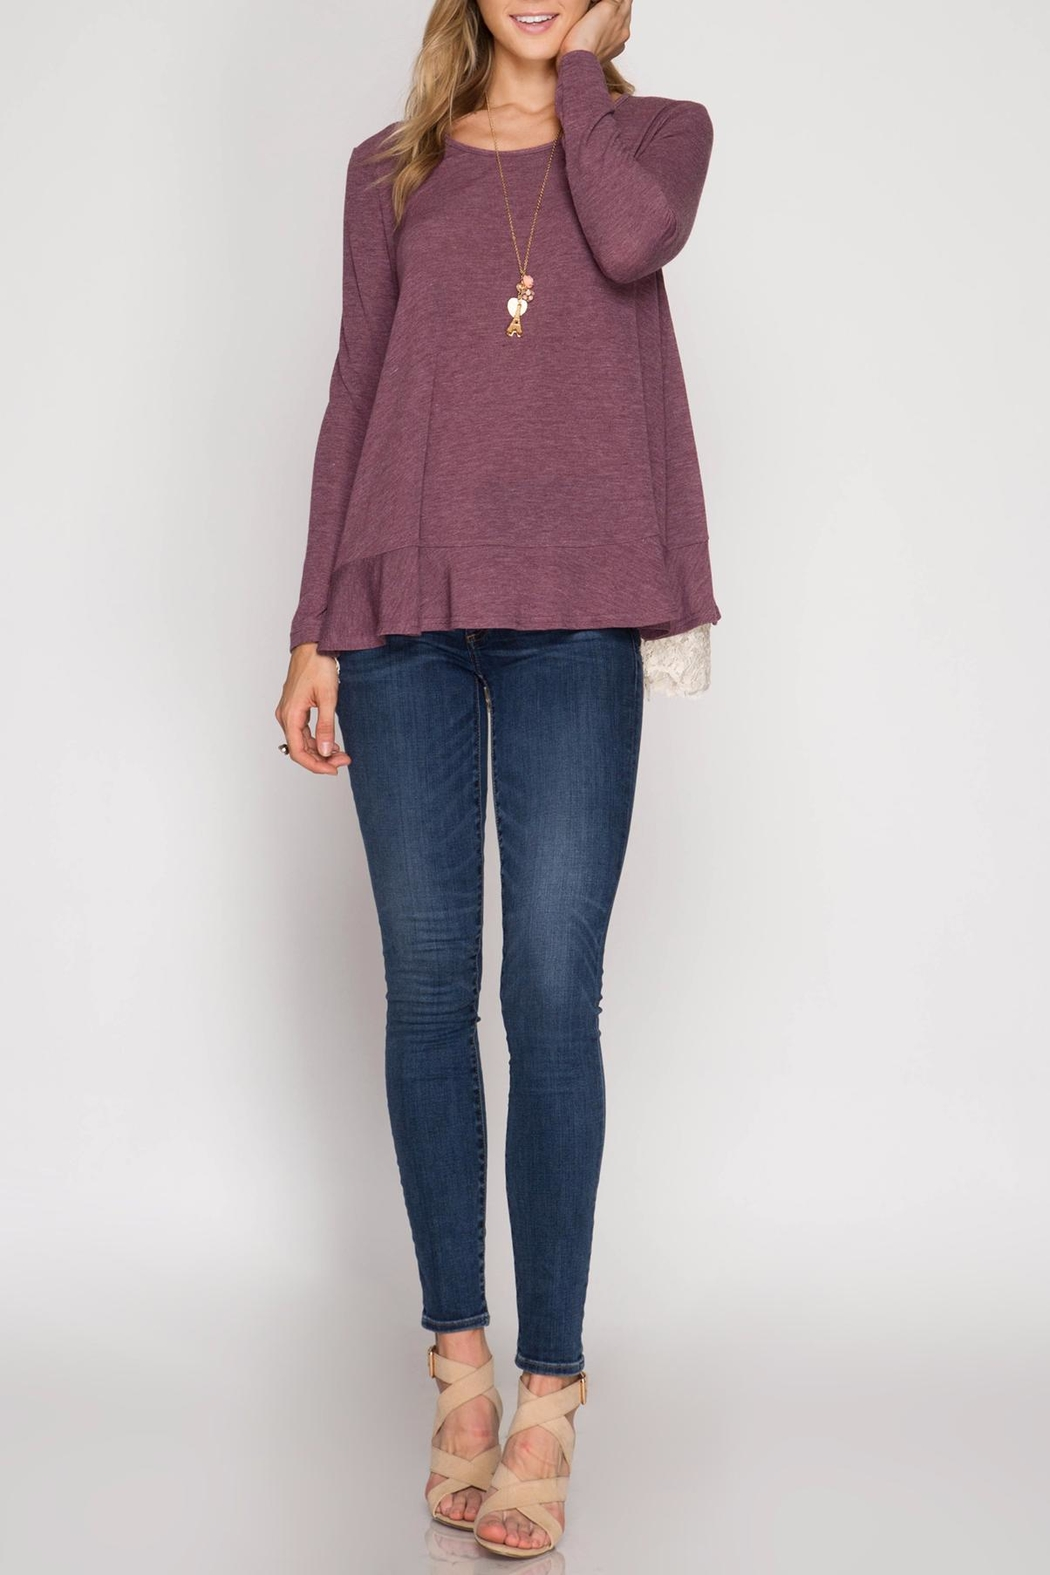 She + Sky Ruffle Lace Sweater - Front Full Image